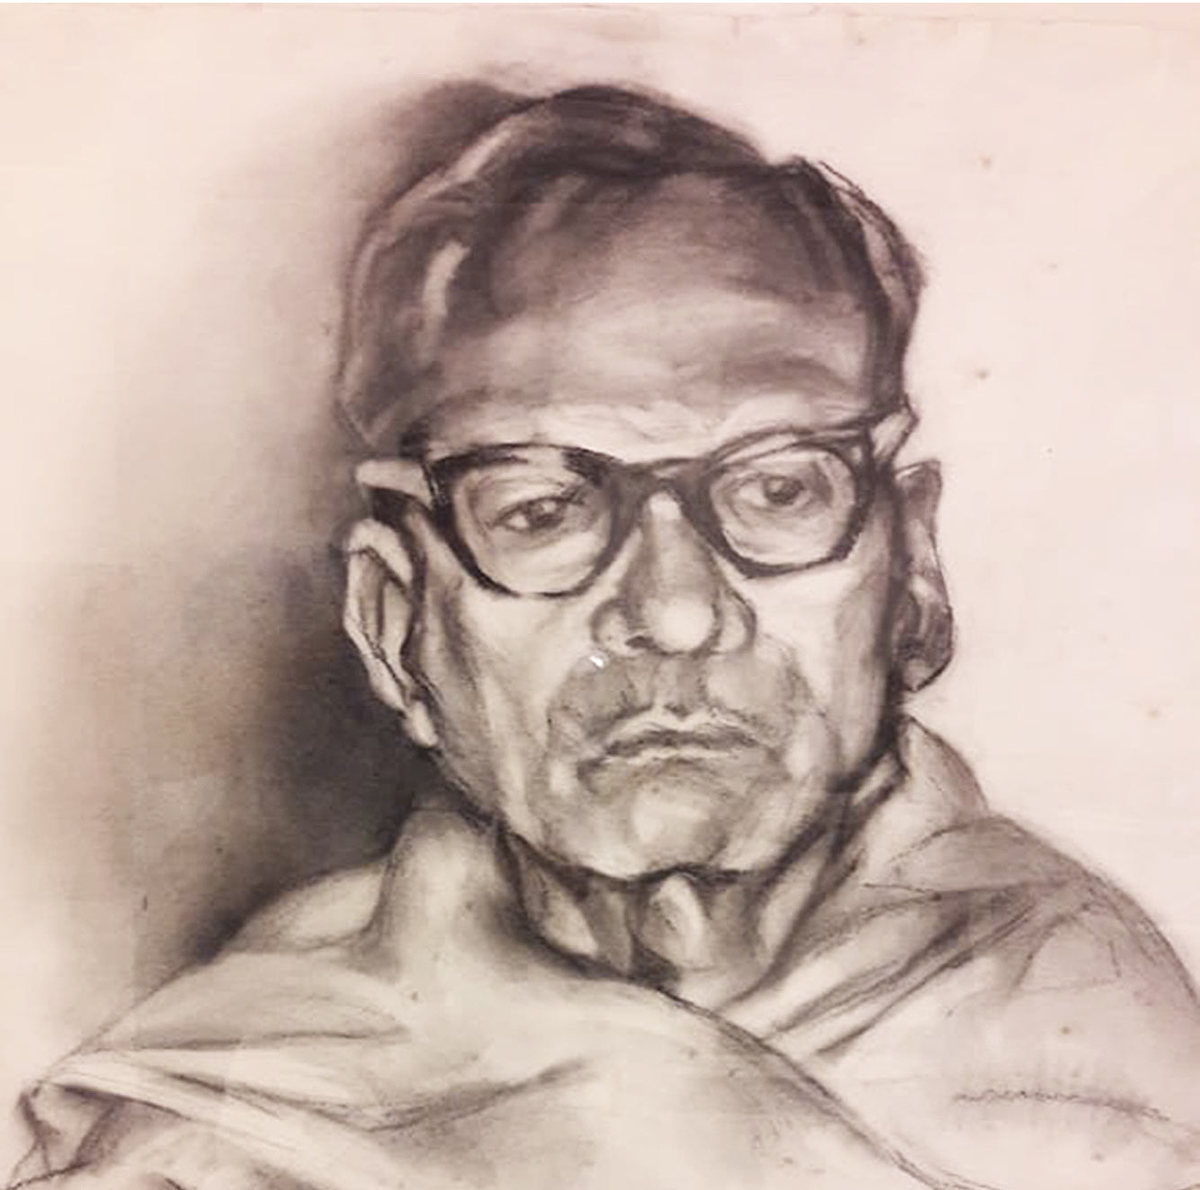 Paritosh sen charcoal on paper 30x22 inches 1988   detail 1